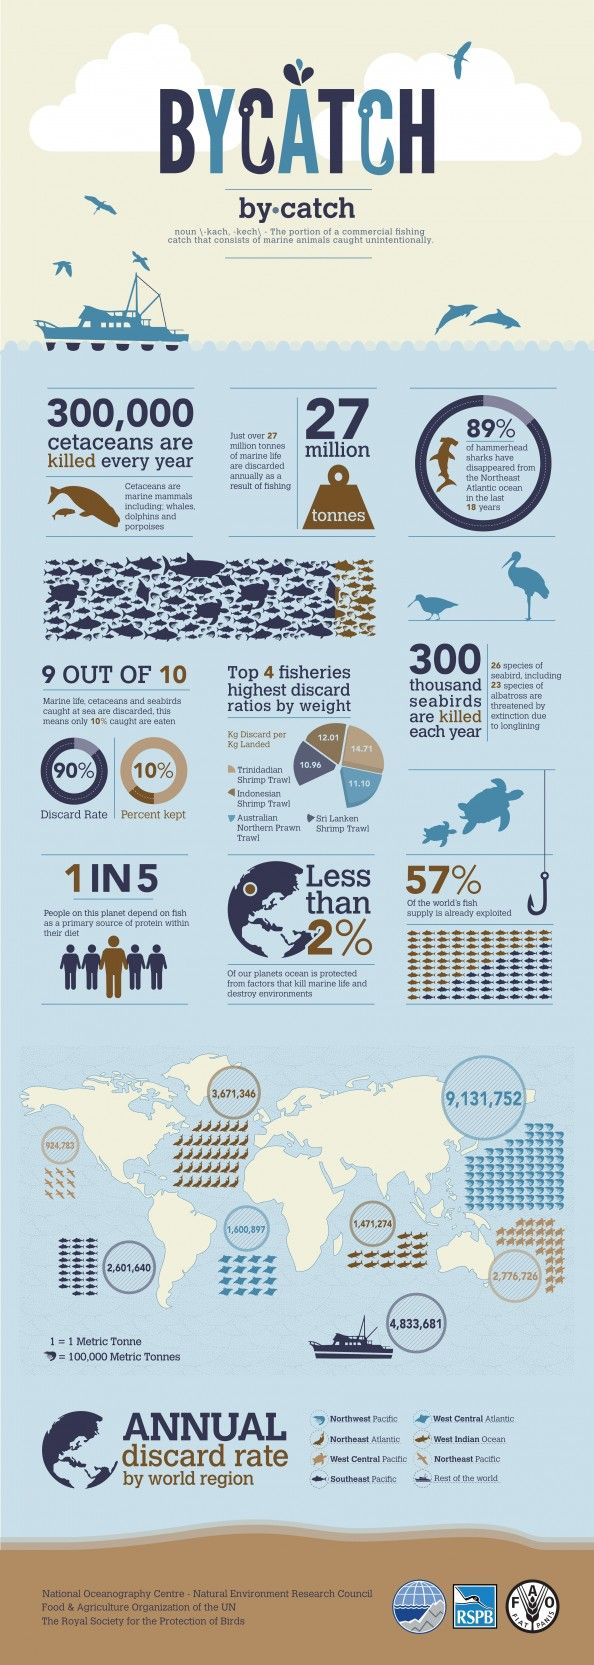 This pictorially describes the ecological impact of consuming too much fish. With a population our size, it's virtually impossible to sustain such sea life.